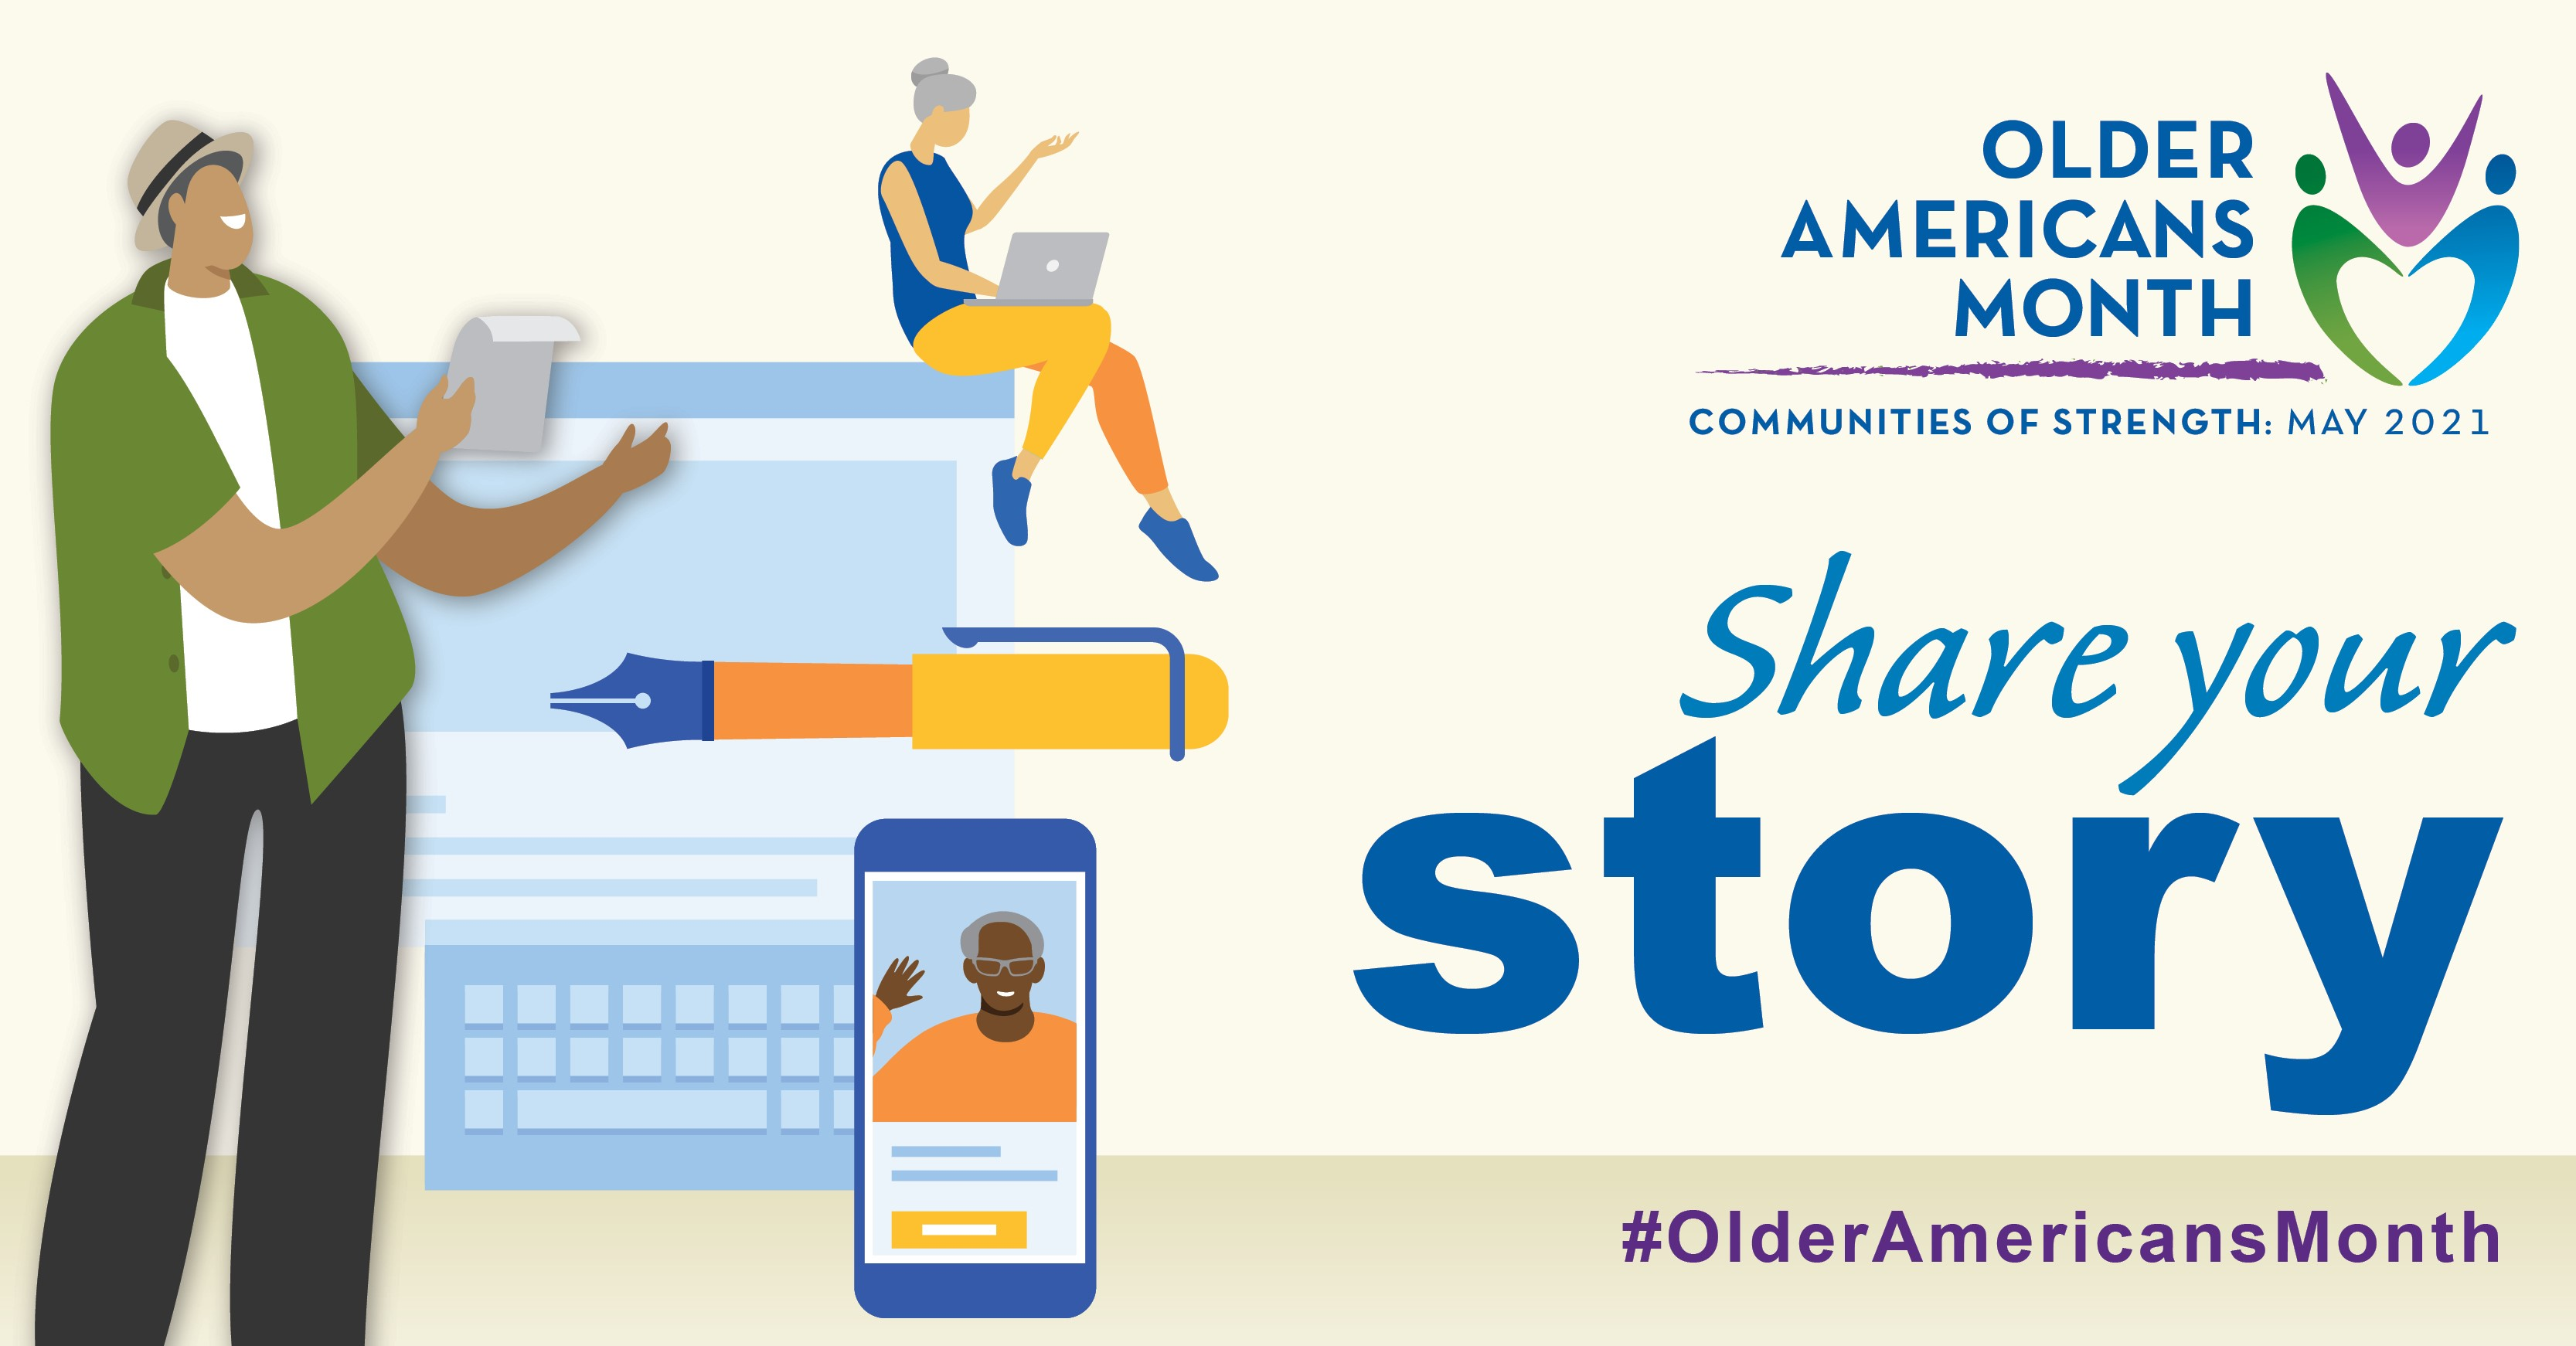 Social Media Graphic: Communities of Strength, Older Americans Month, May 2021. Share your story. #OlderAmericansMonth